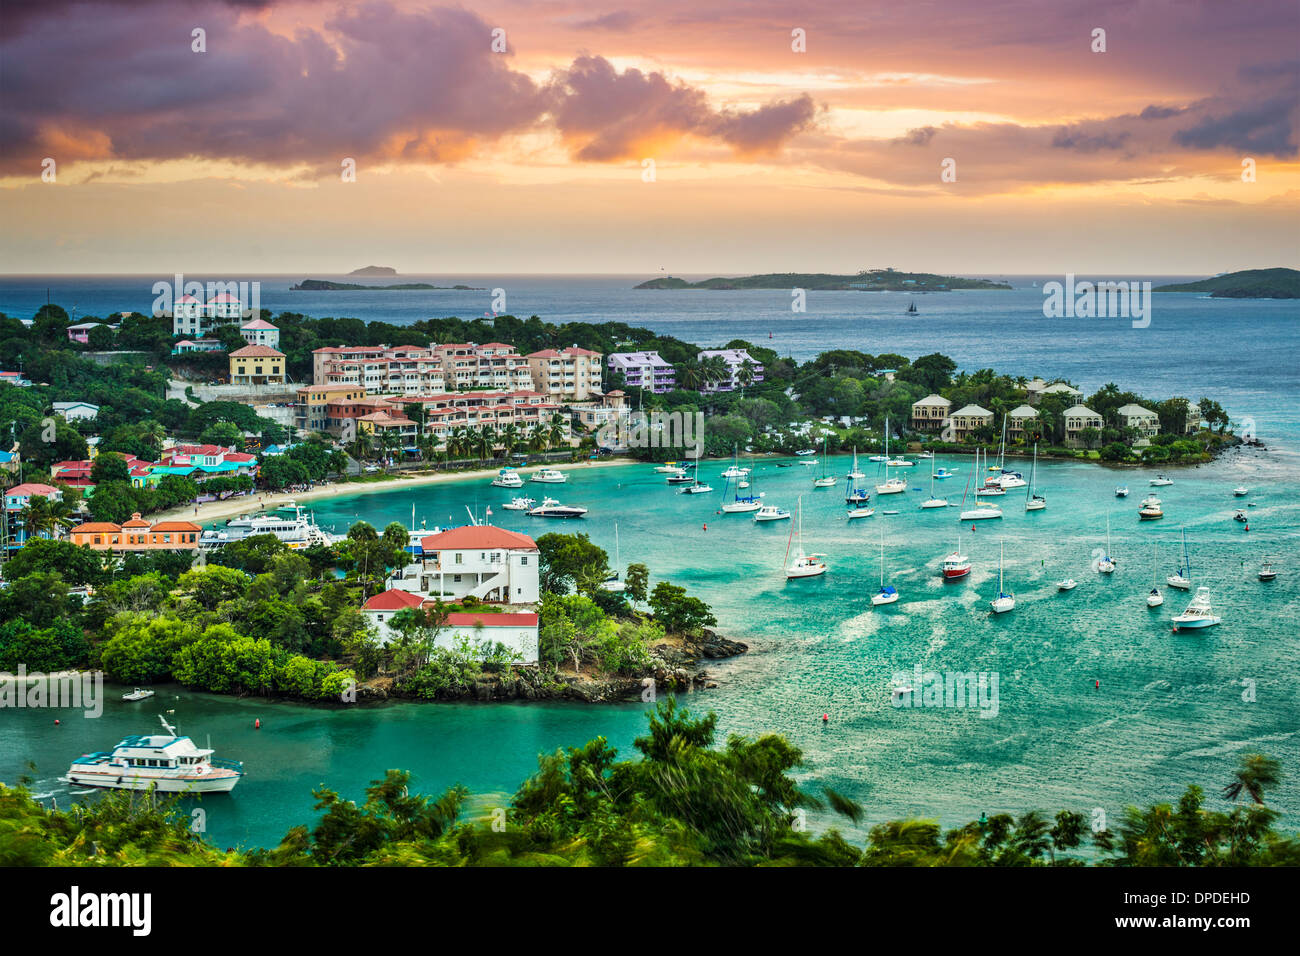 Cruz Bay, St John, United States Virgin Islands. - Stock Image